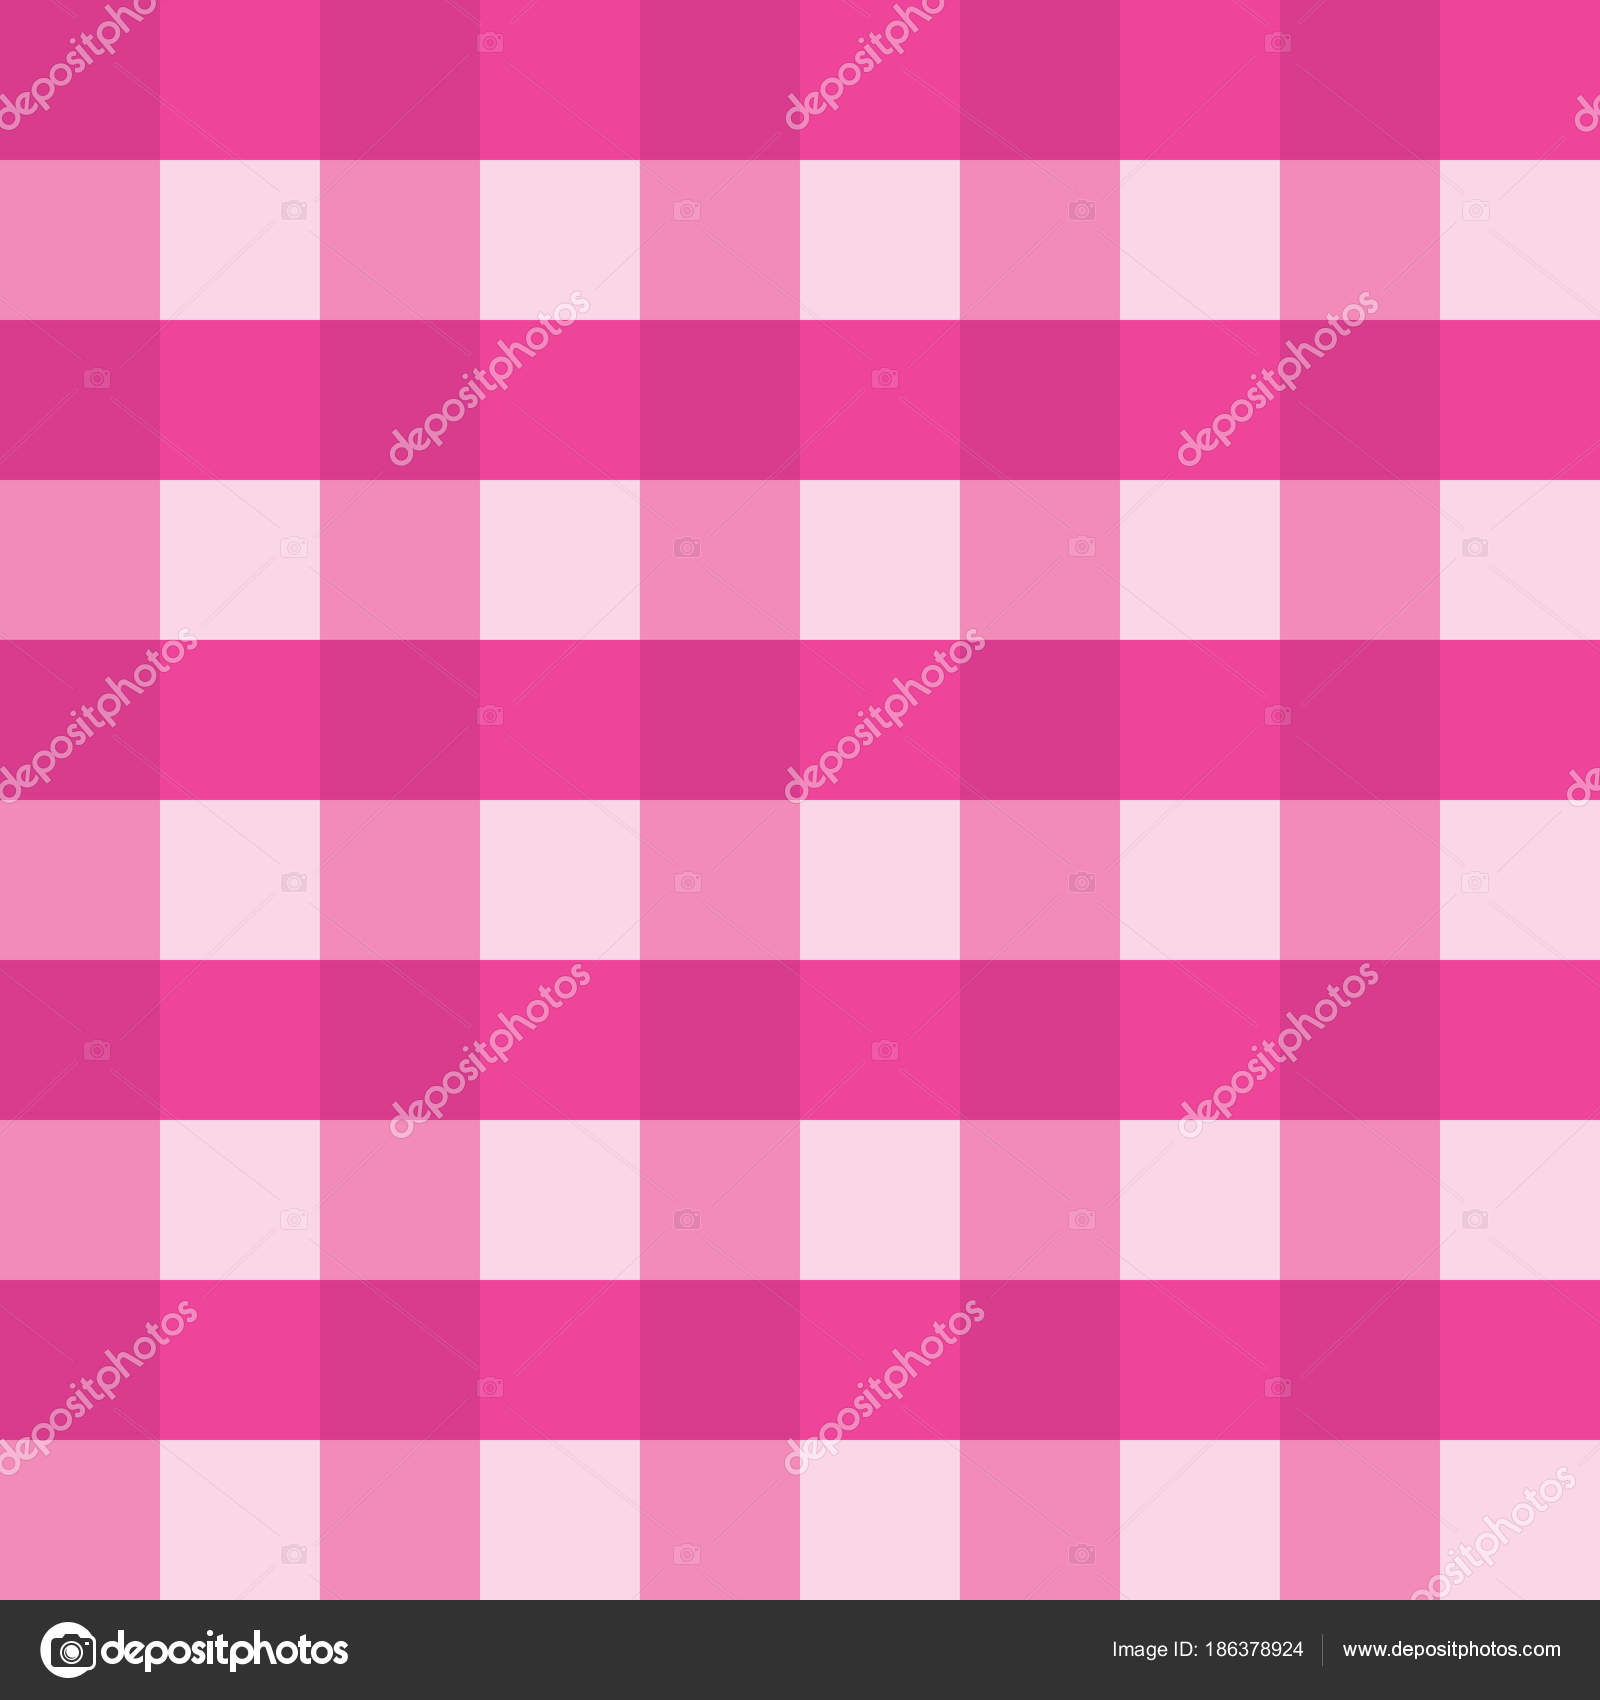 Pink Gingham Seamless Vector Background Pattern Design. Texture From  Rhombus Or Squares For Plaid, Tablecloths, Clothes, Shirts, Dresses, Paper  And Other ...